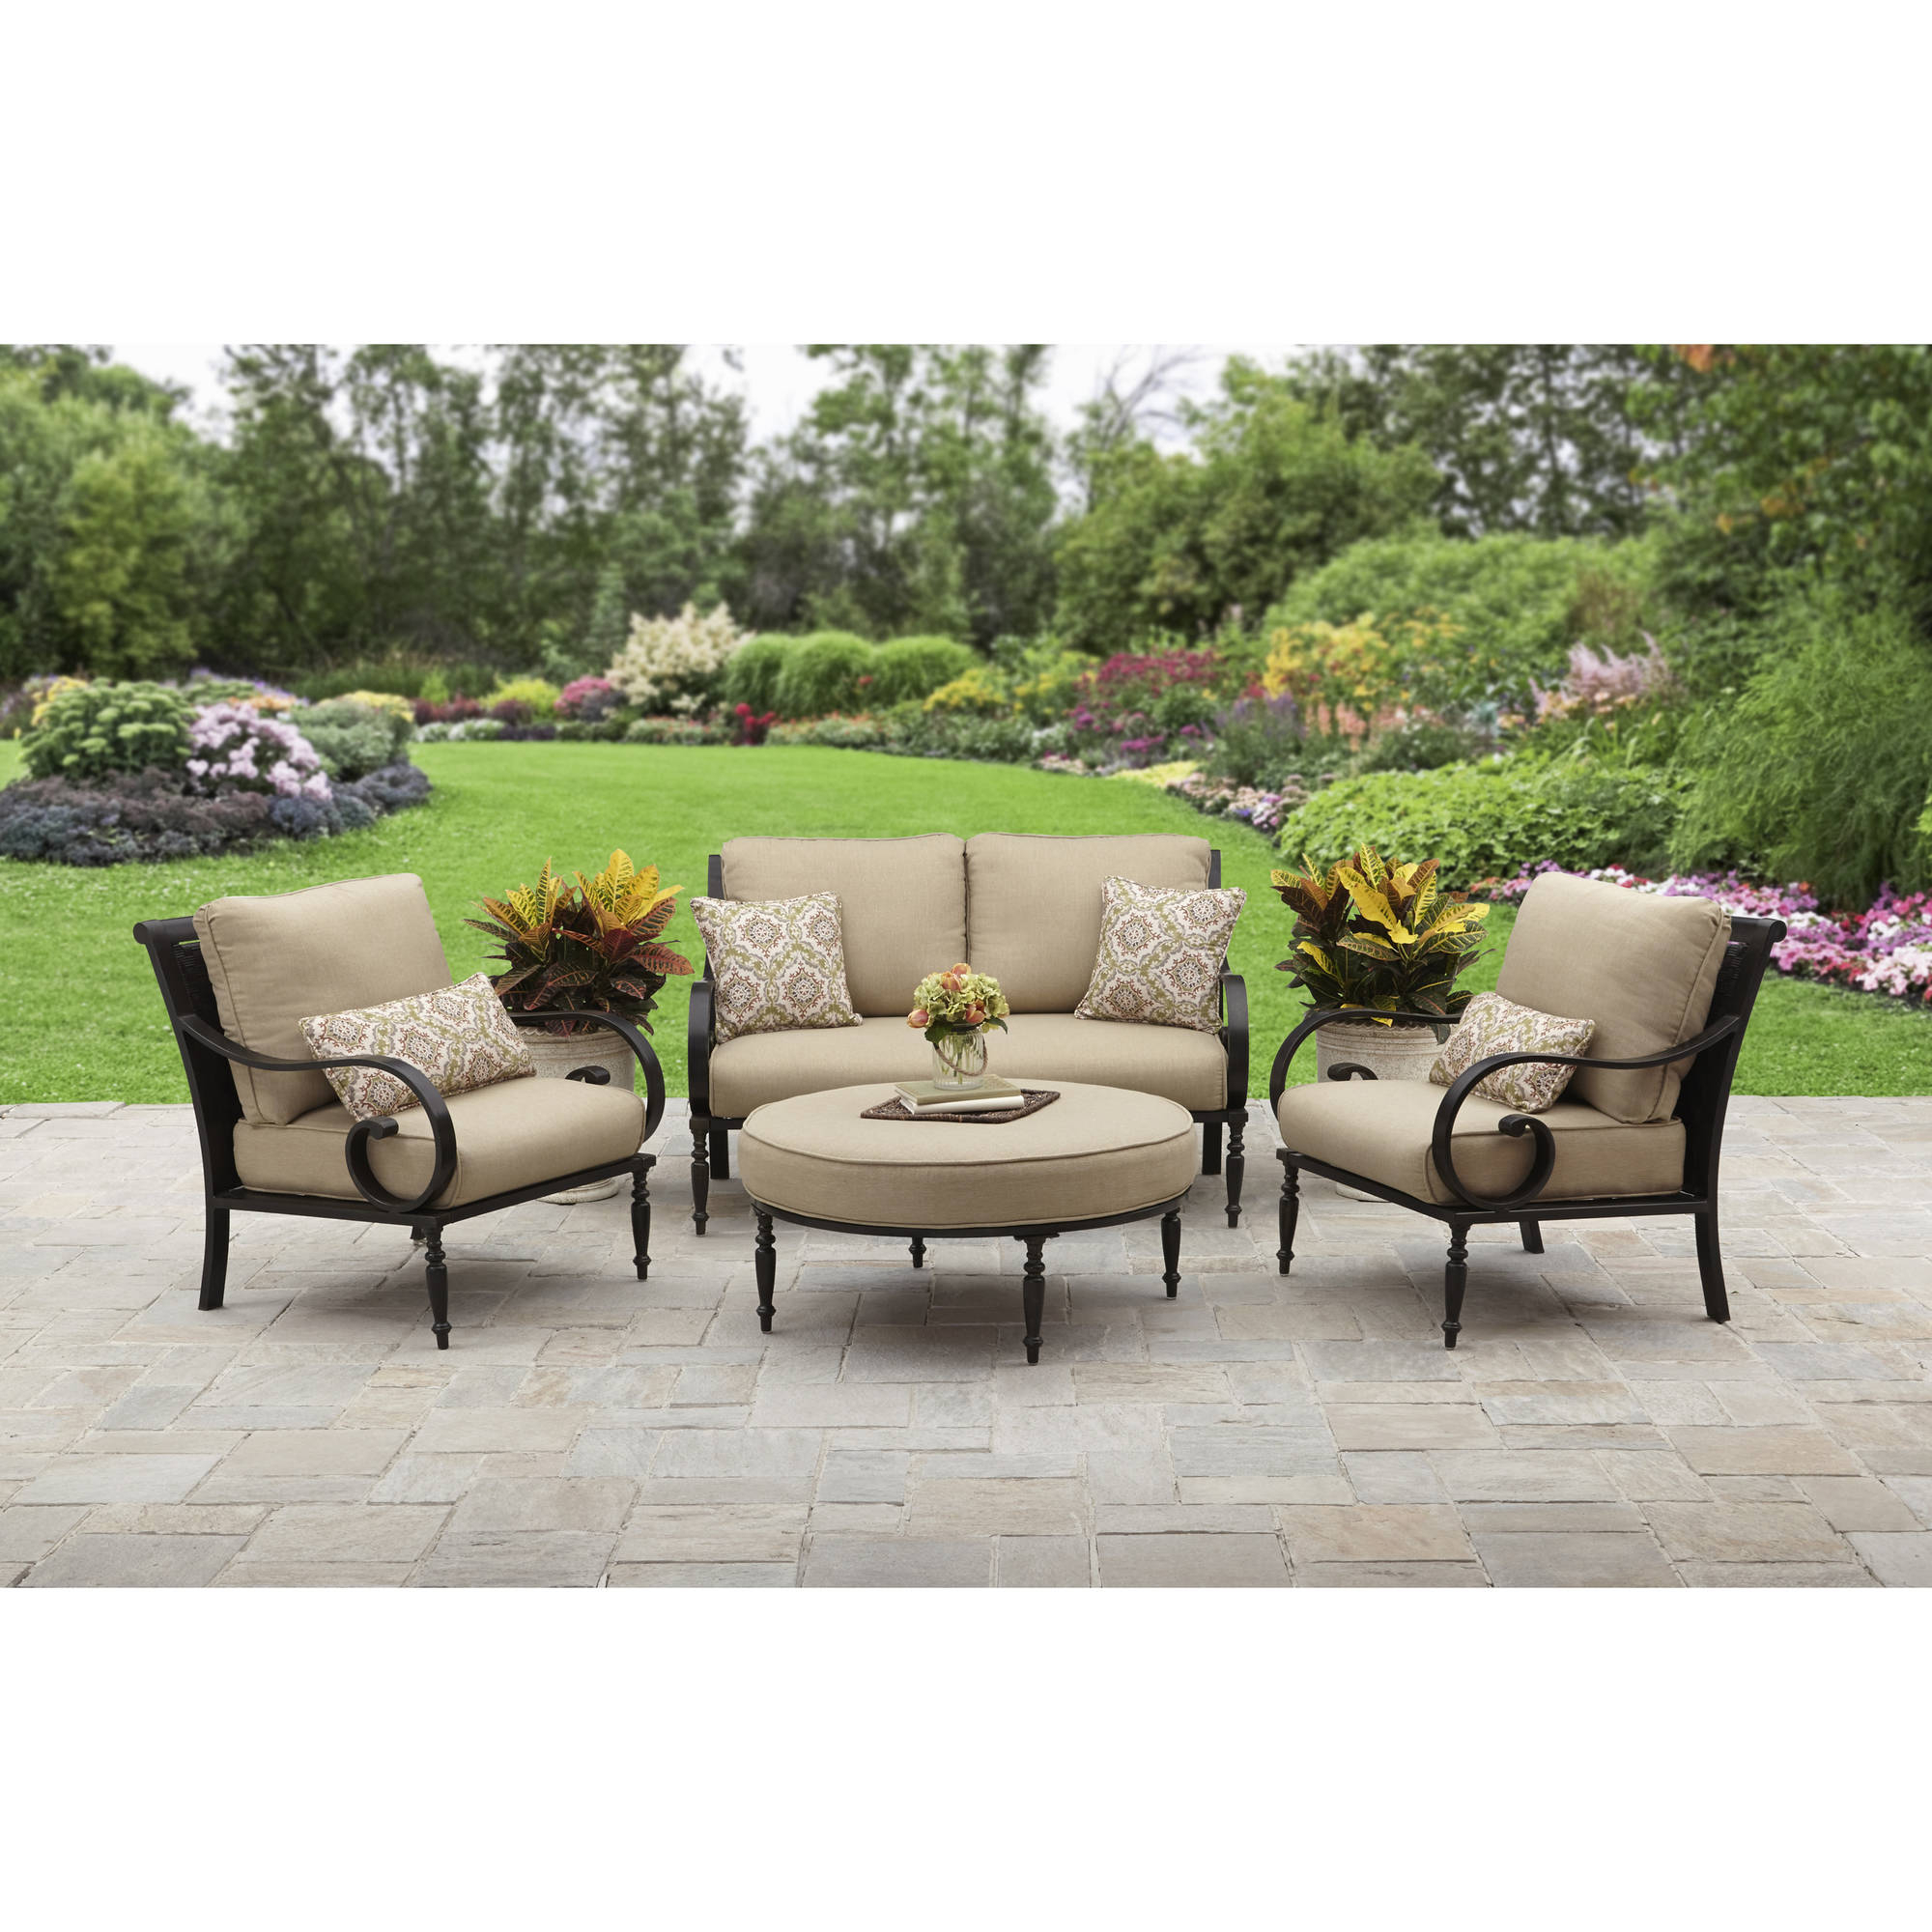 Englewood Loveseats With Cushions Intended For 2019 Better Homes And Gardens Englewood Heights Ii Aluminum 4 Piece Outdoor  Patio Conversation Set, Seats  (View 9 of 20)